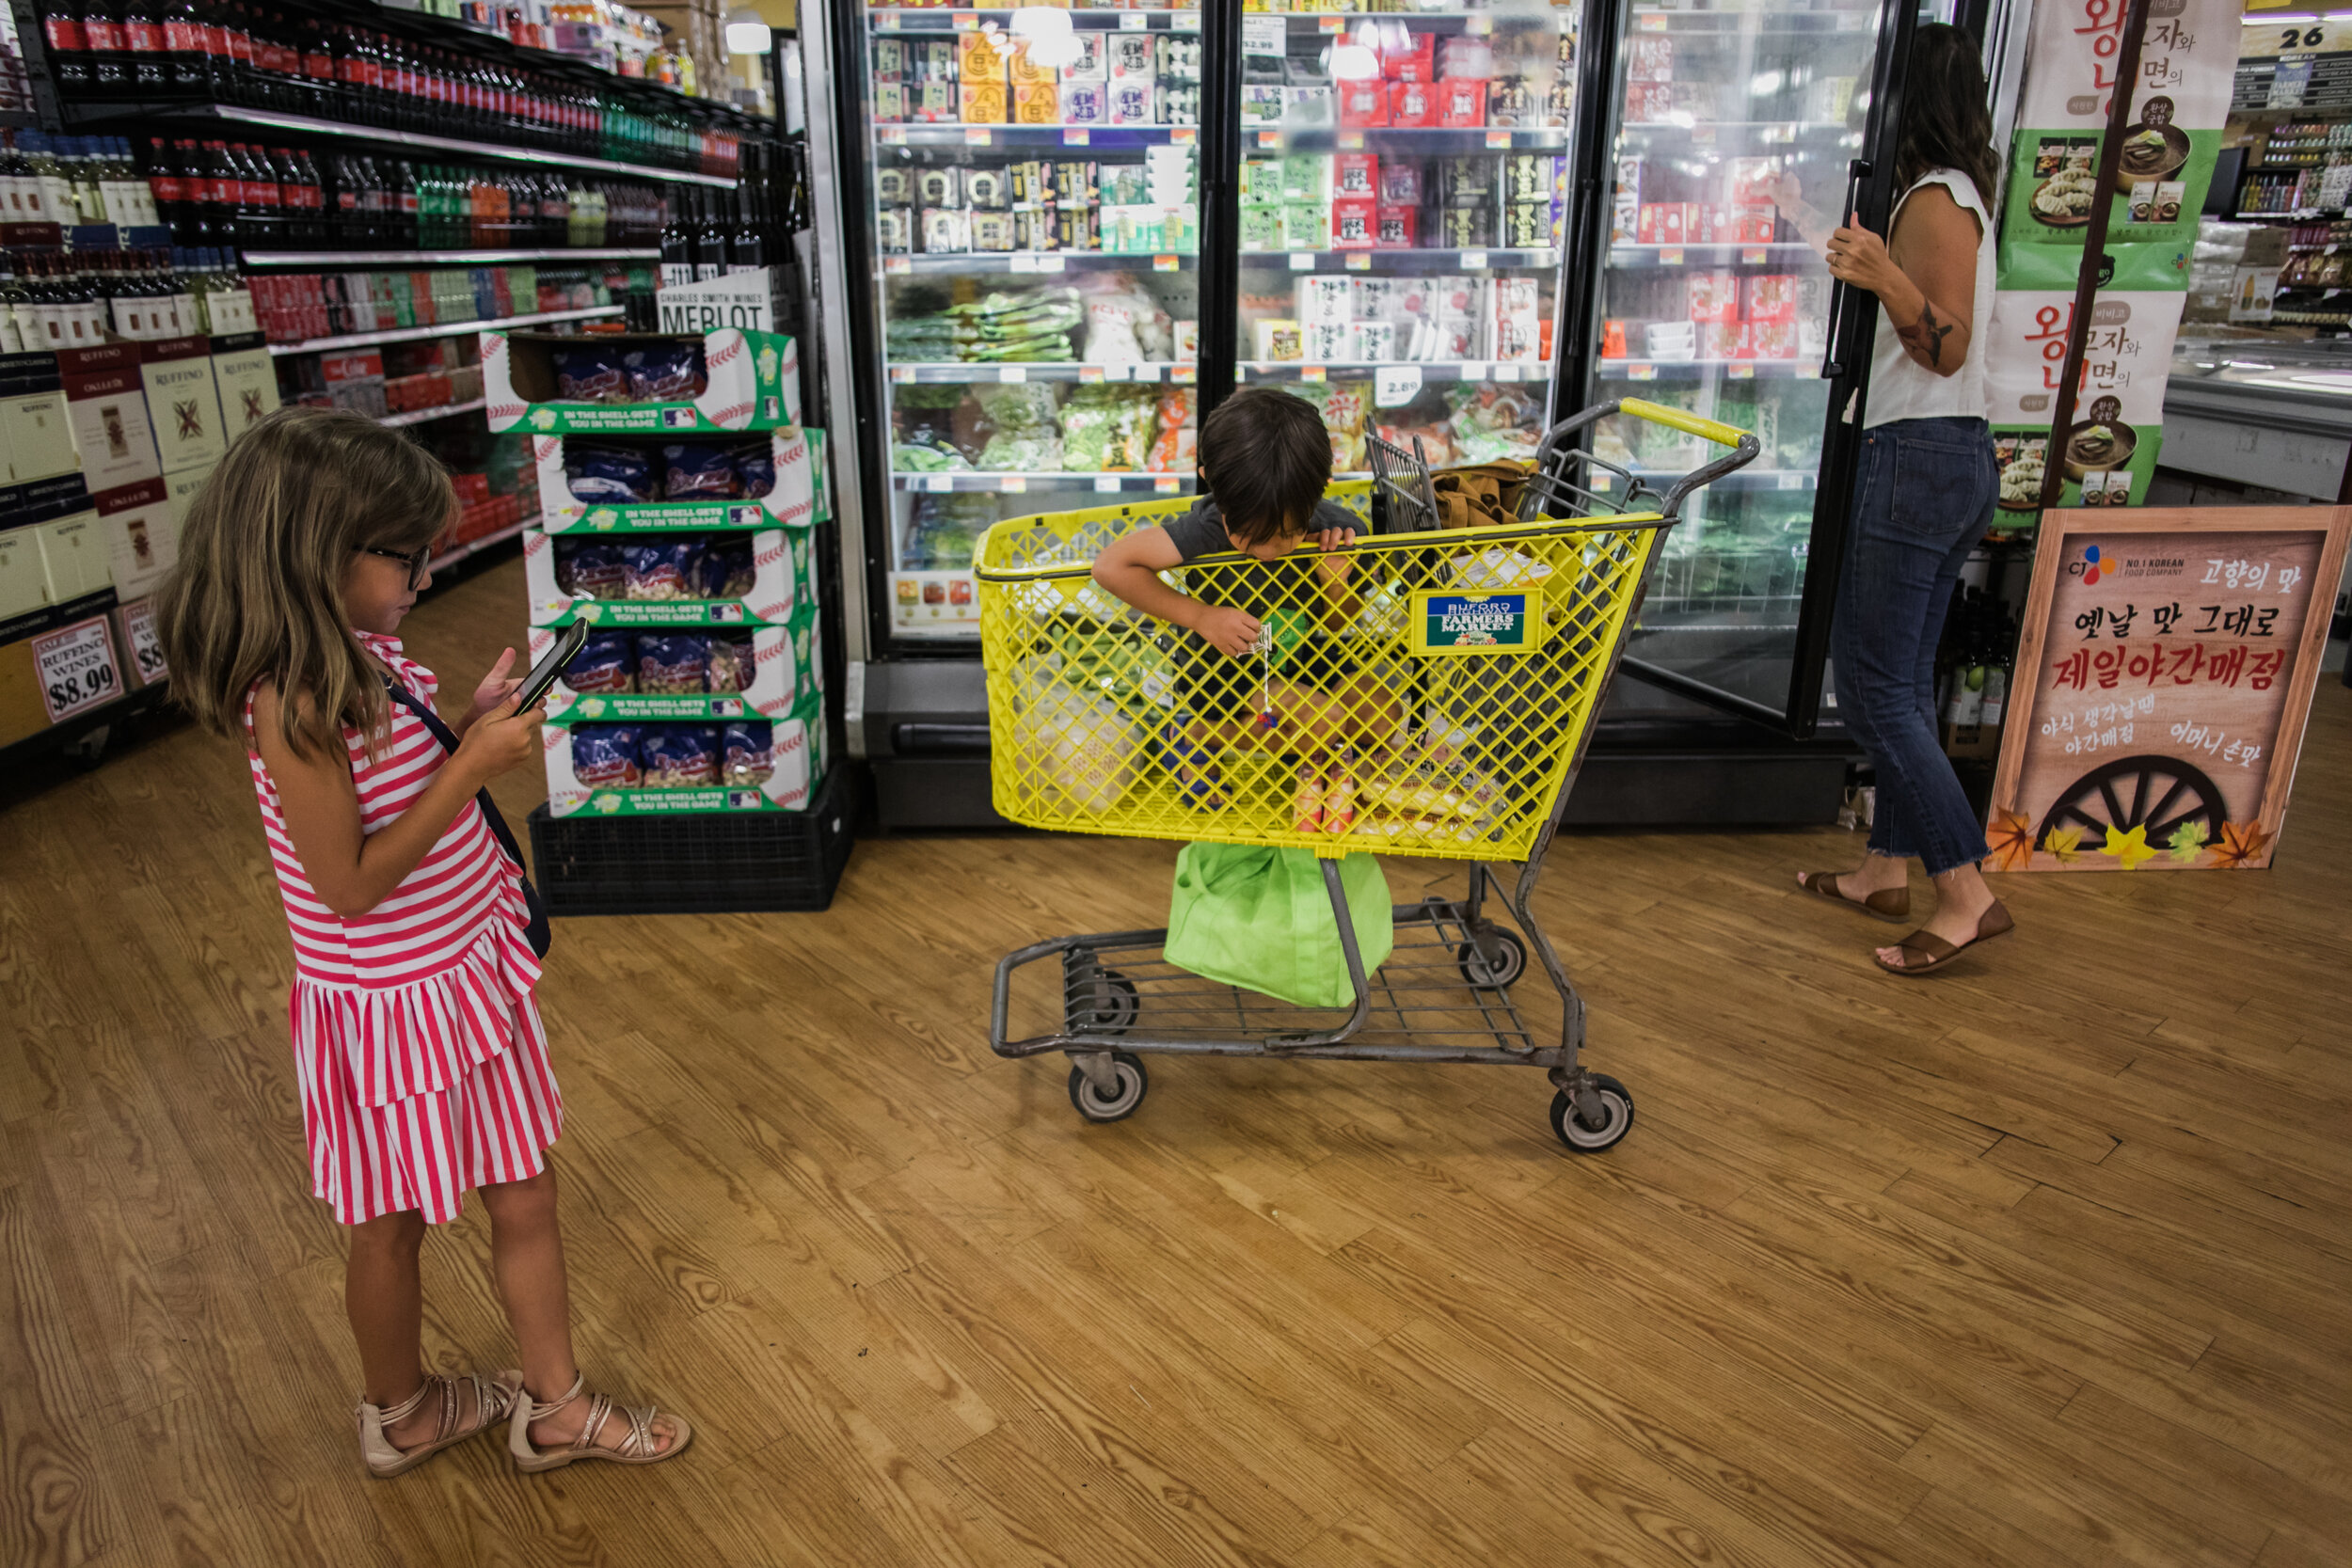 image of a boy sitting in a cart playing with a spiderman toy while his sister reads the grocery list on a phone and his mom grabs food out of a freezer in a grocery store from a day in the life photography session